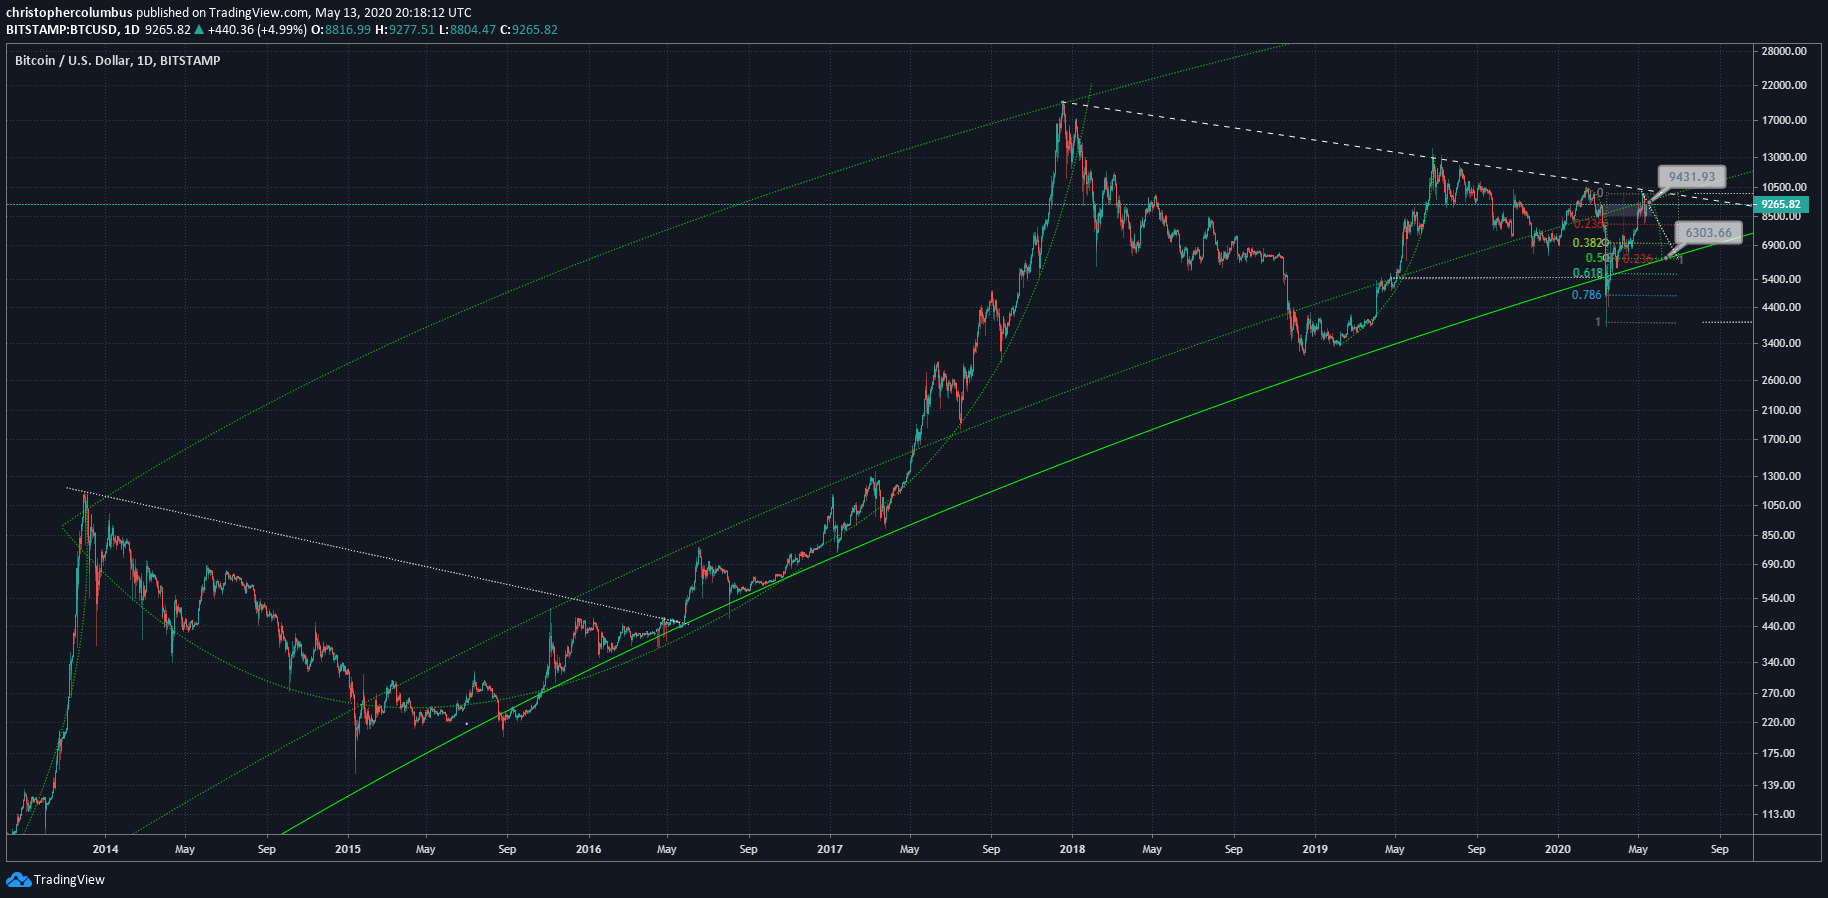 Bitcoin US dollar price chart